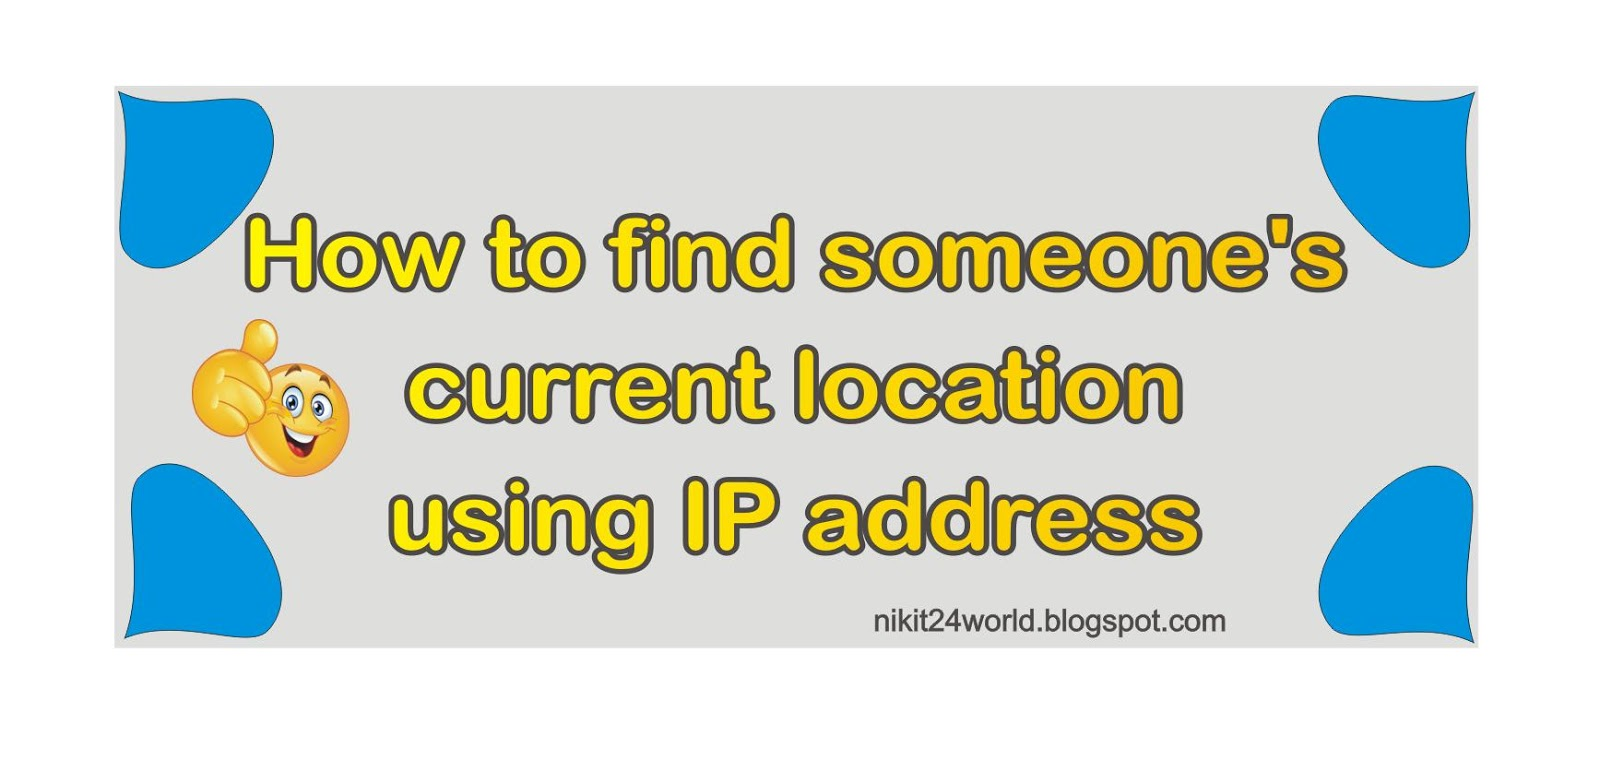 How to find someone's current location using IP address - IT